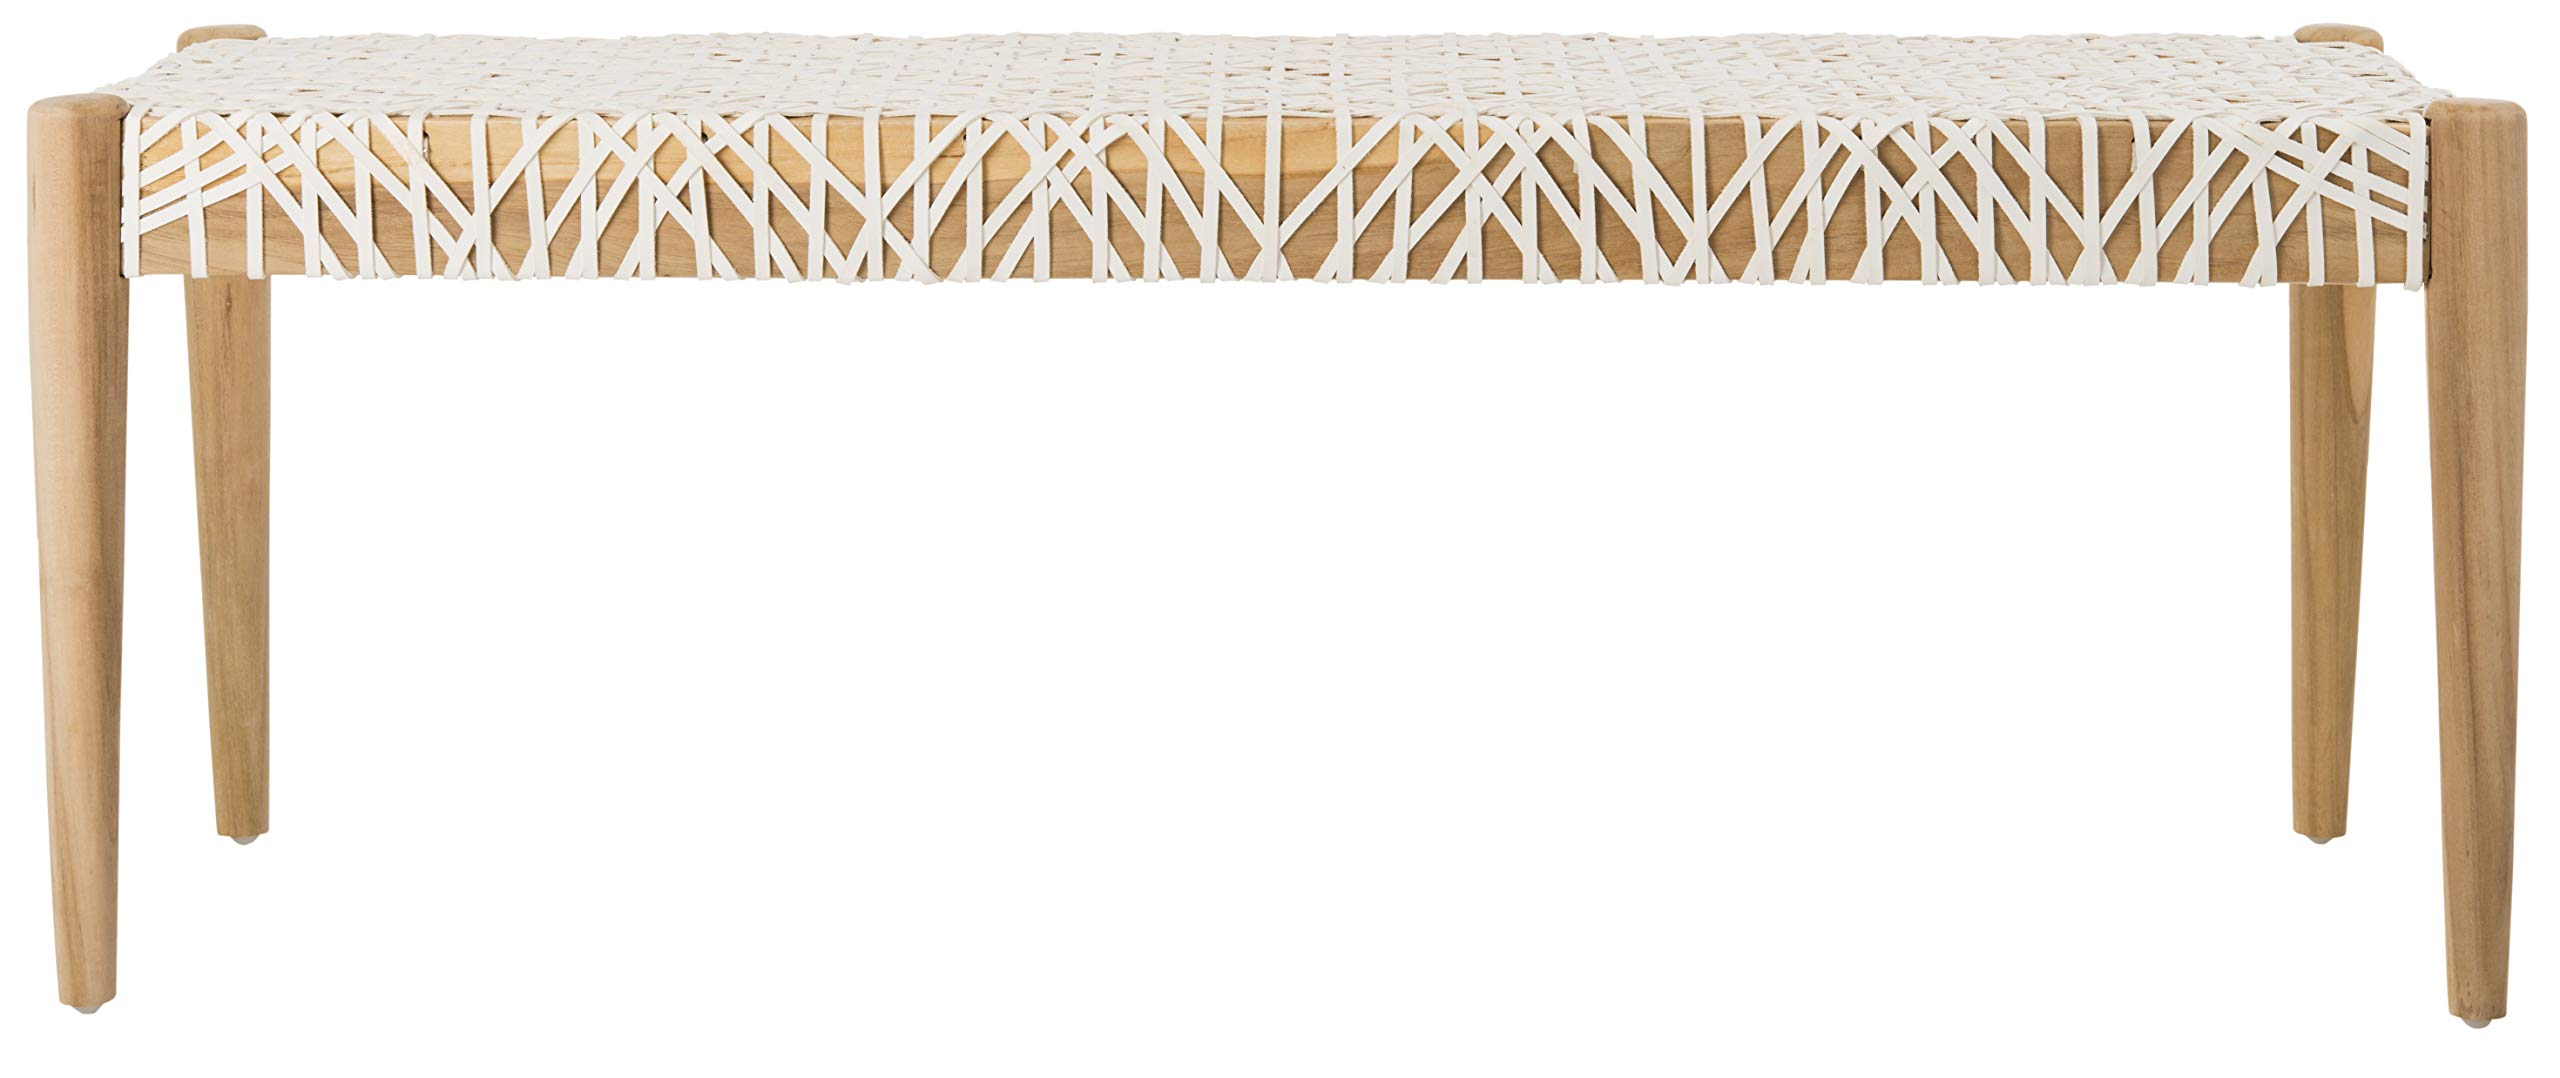 Safavieh BCH1000A Home Collection Bandelier Bench, Off- Off-White/Natural by Safavieh (Image #4)